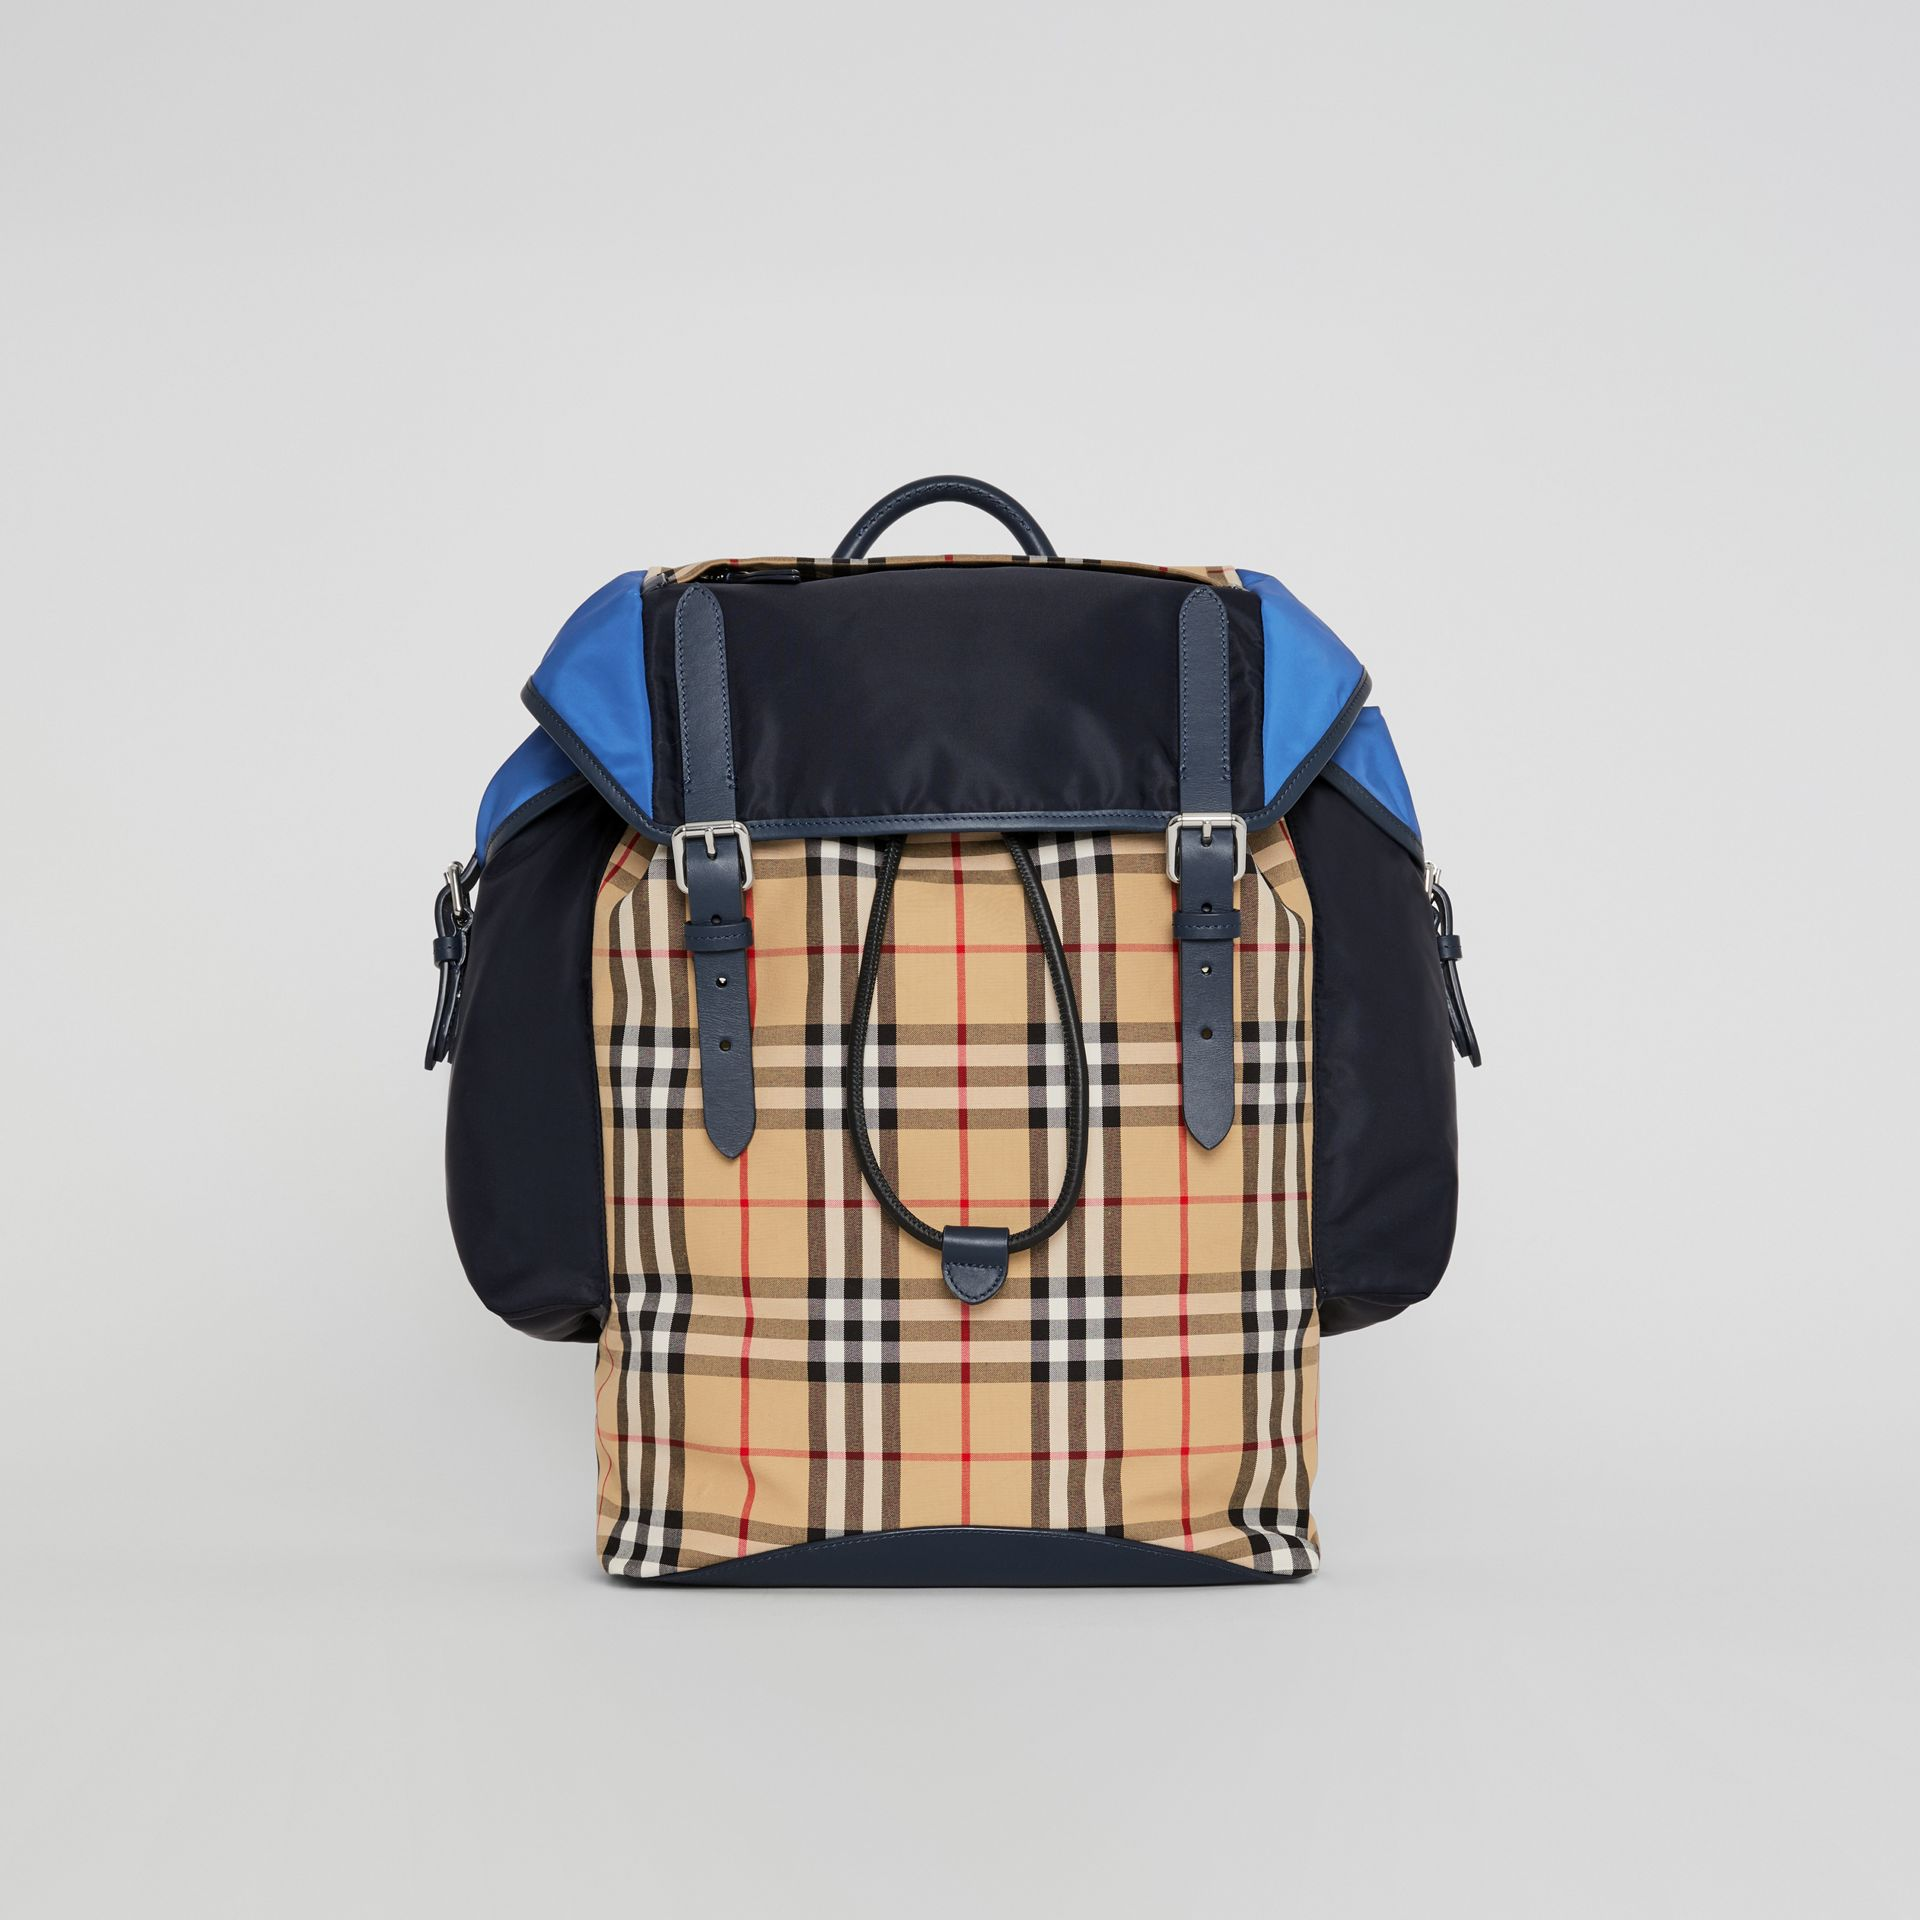 Lederrucksack im Vintage Check- und Colour-Blocking-Design (Marineblau) - Herren | Burberry - Galerie-Bild 0